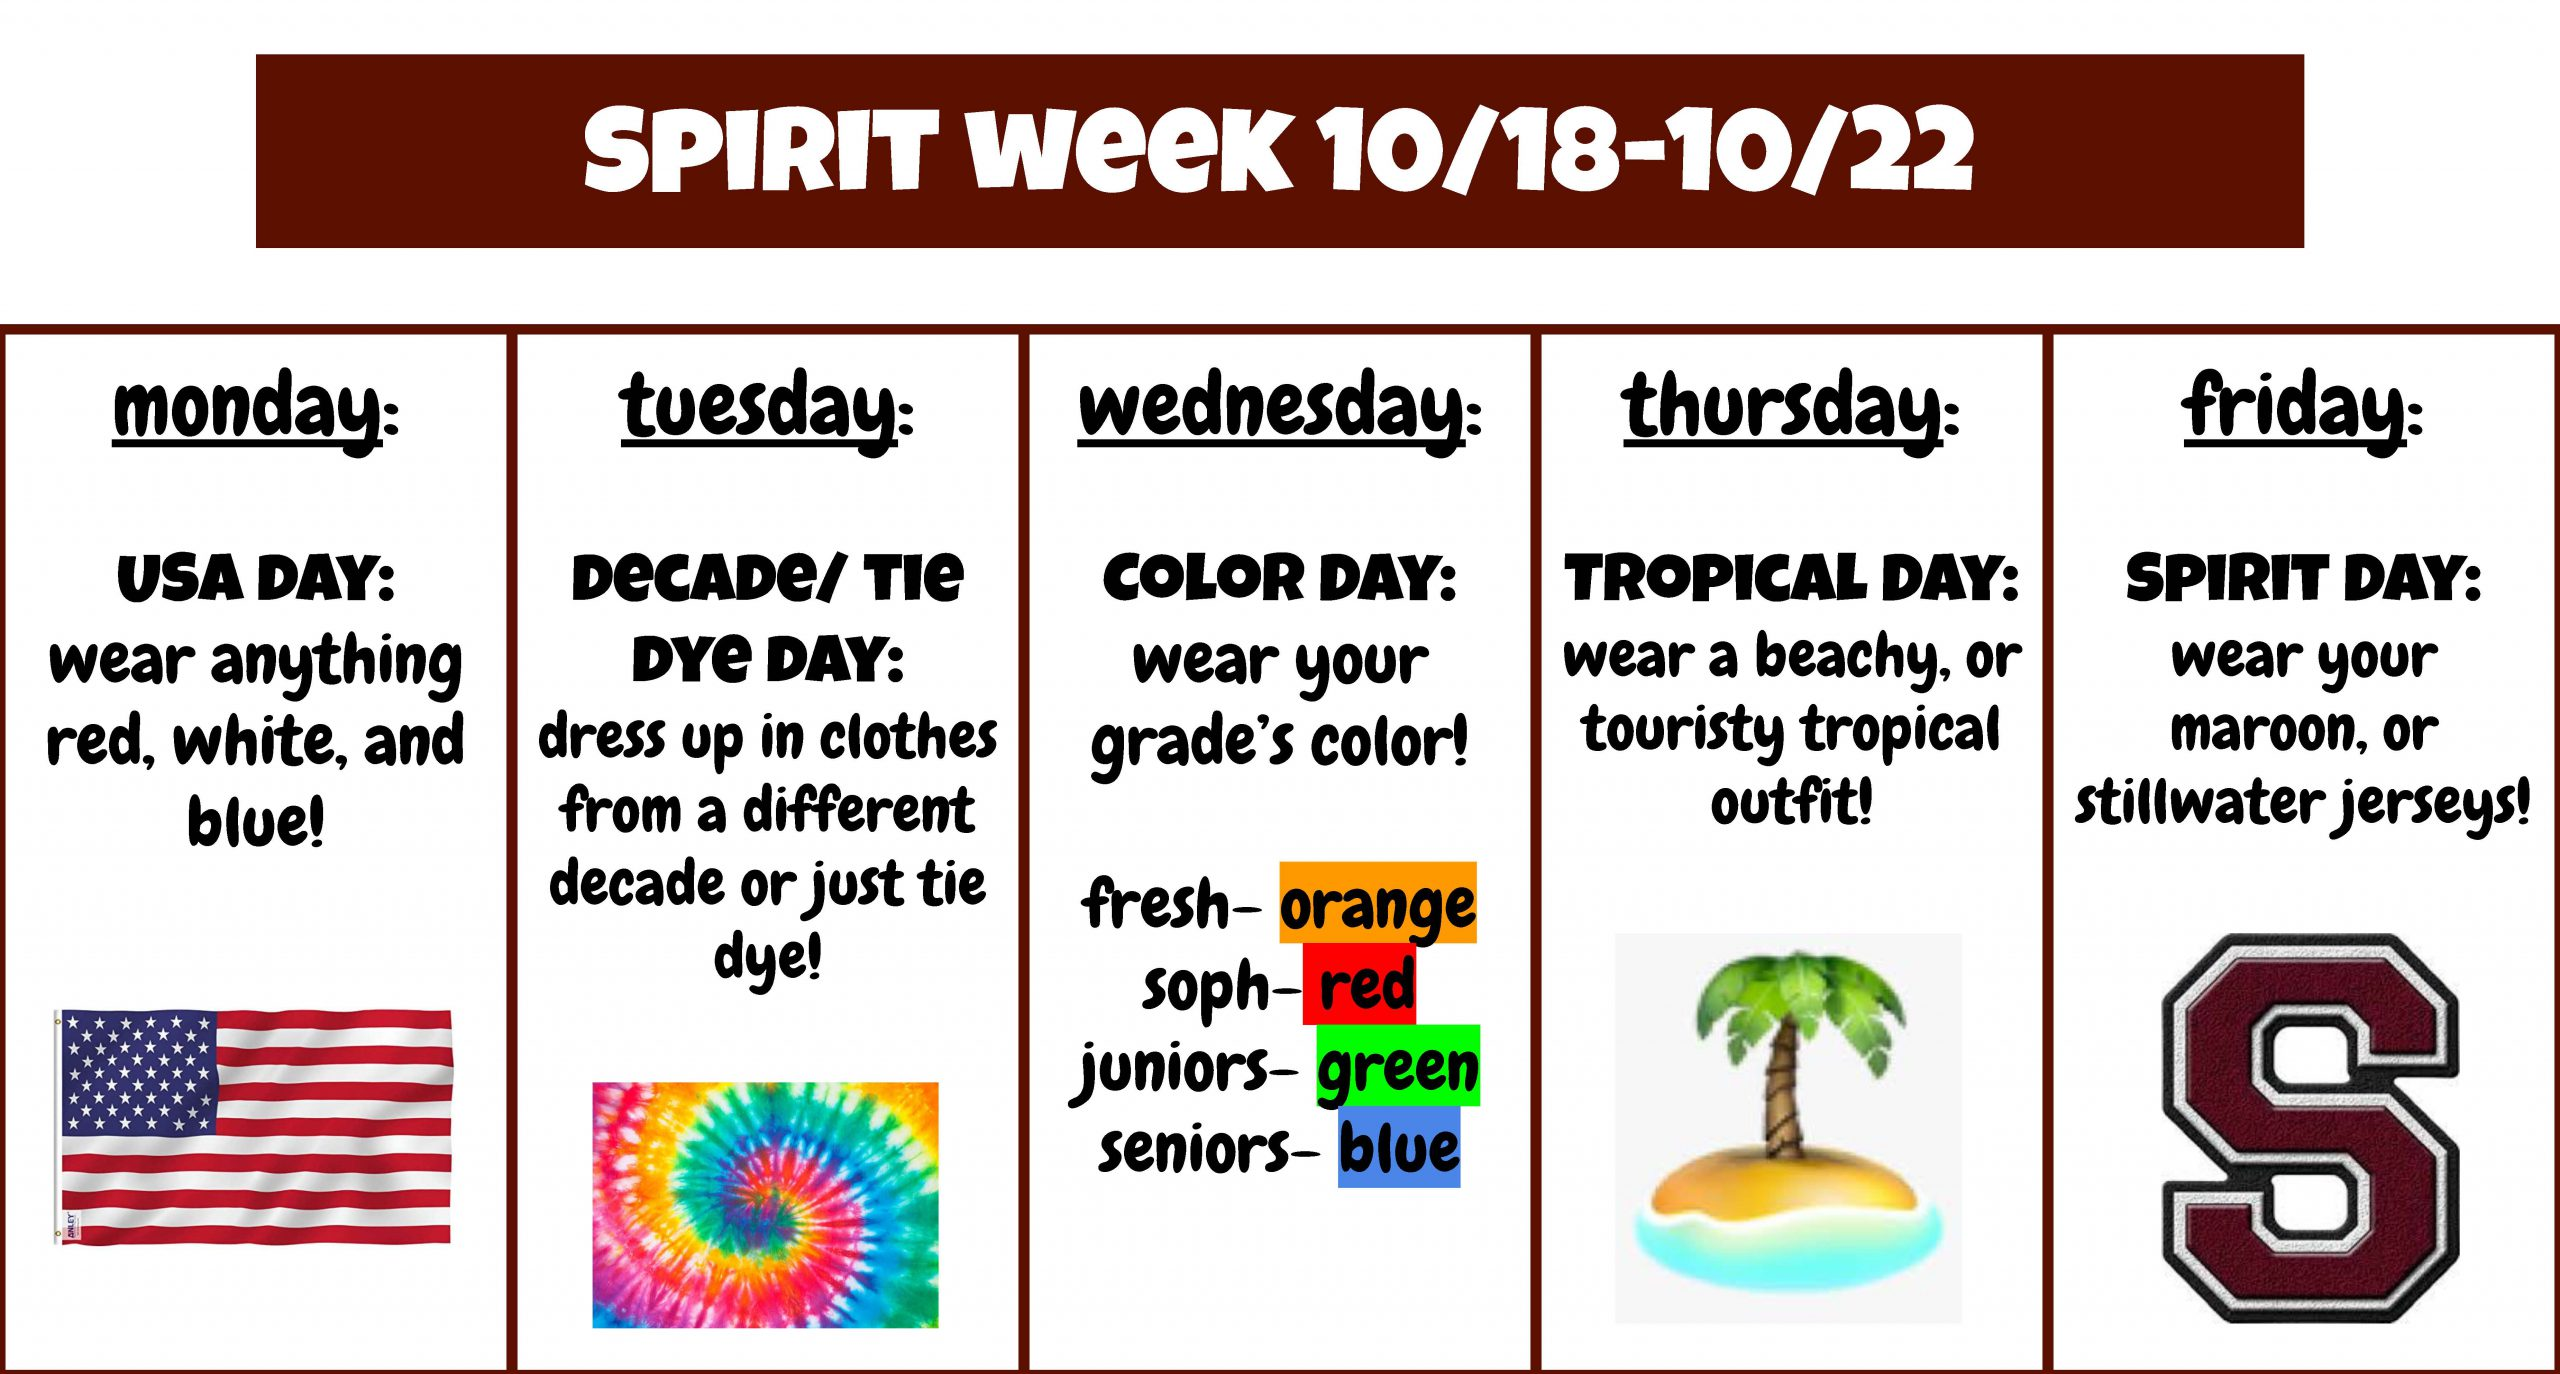 Spirit Week events graphic: Monday USA Day, Tuesday Decade/Tie Dye Day, Wednesday Color Day, Thursday Tropical Day, Friday Spirit Day